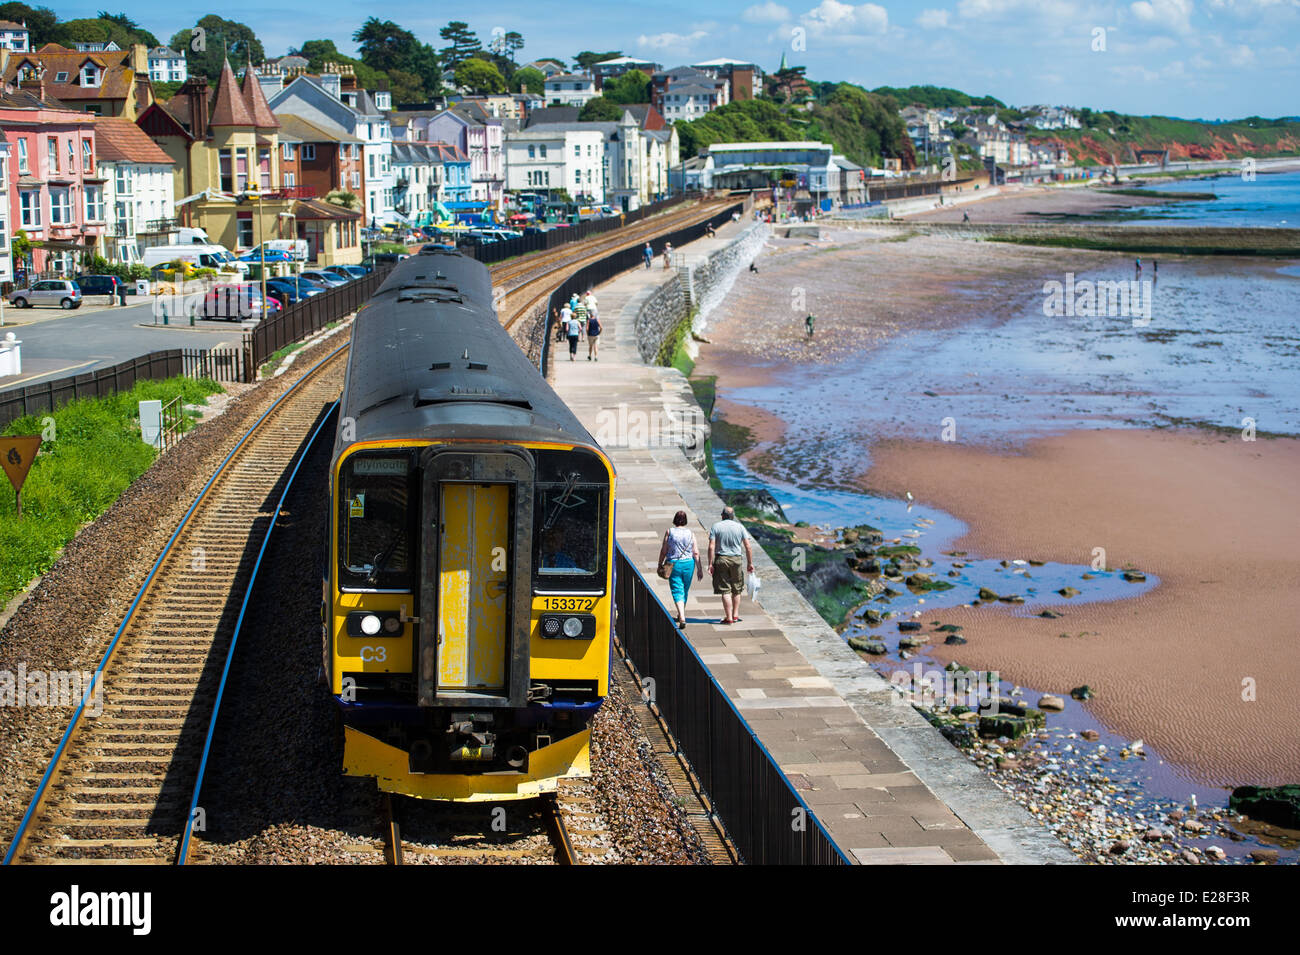 A First Great Western train just outside Dawlish station in England. - Stock Image